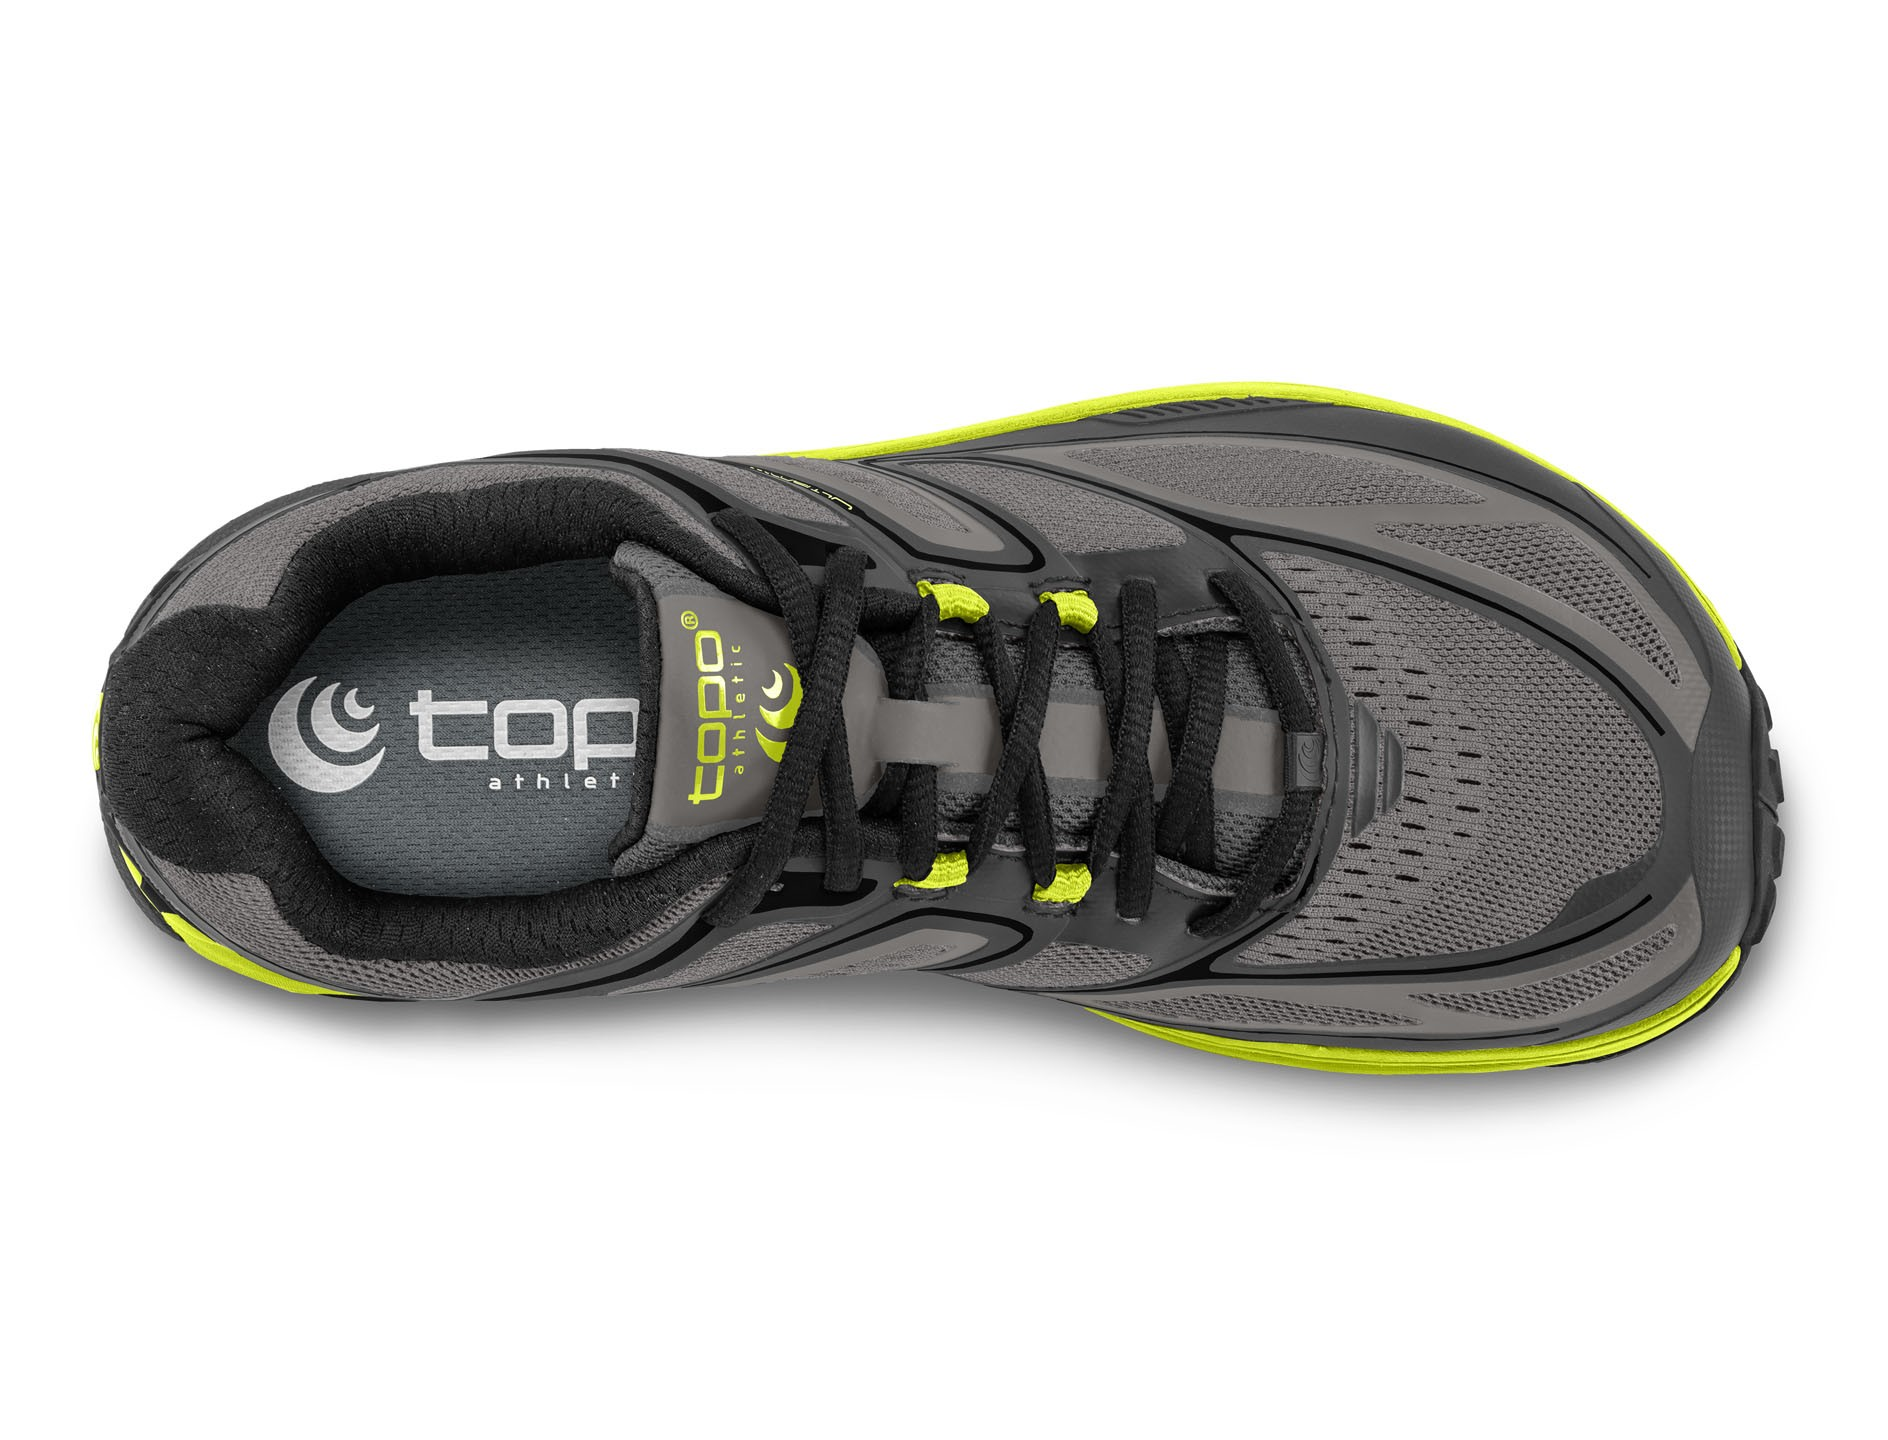 Vibram Sole Trail Running Shoes